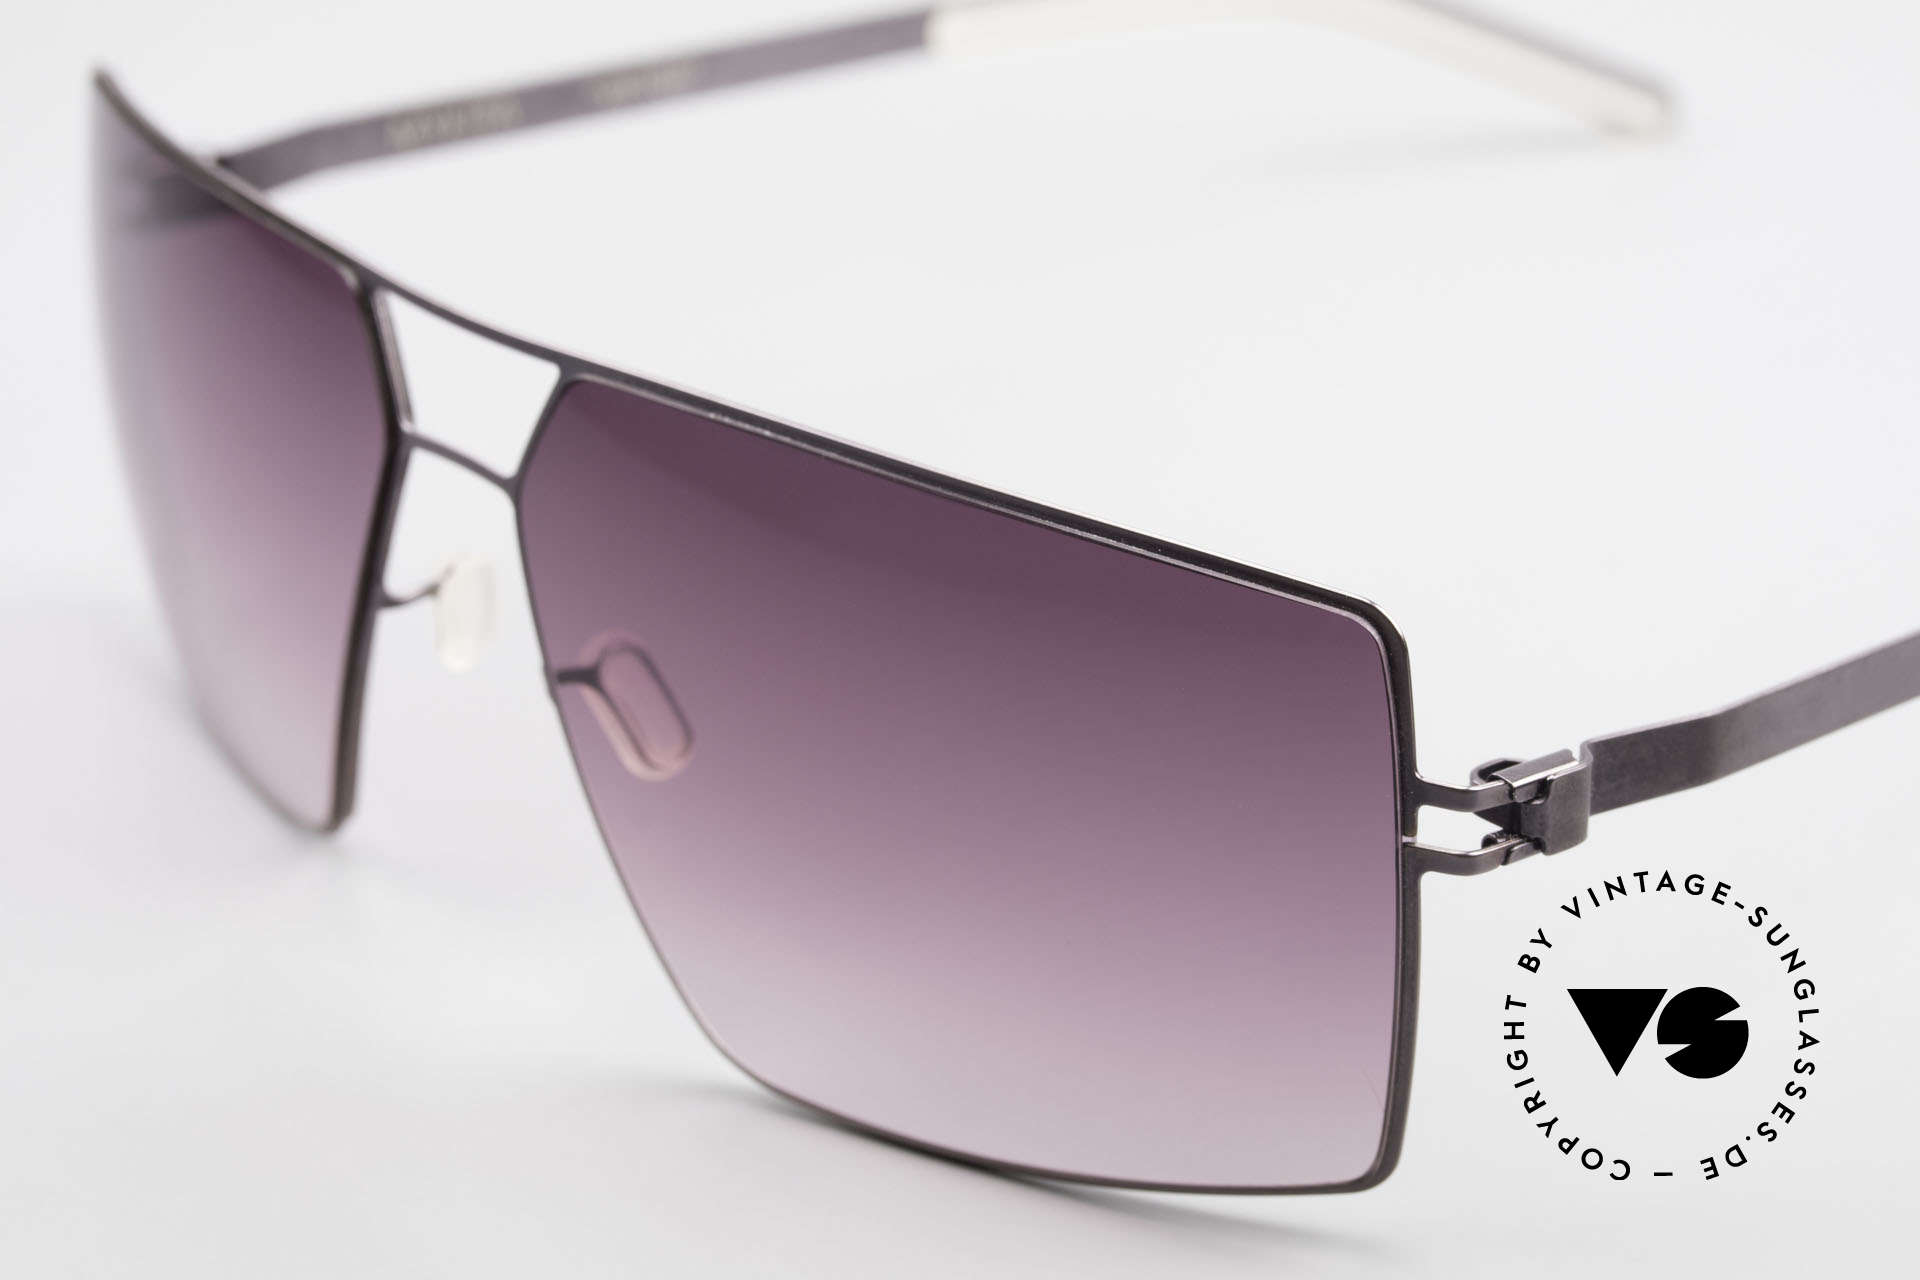 Mykita Viktor Designer Sunglasses Square, flexible metal frame = innovative and elegant likewise, Made for Men